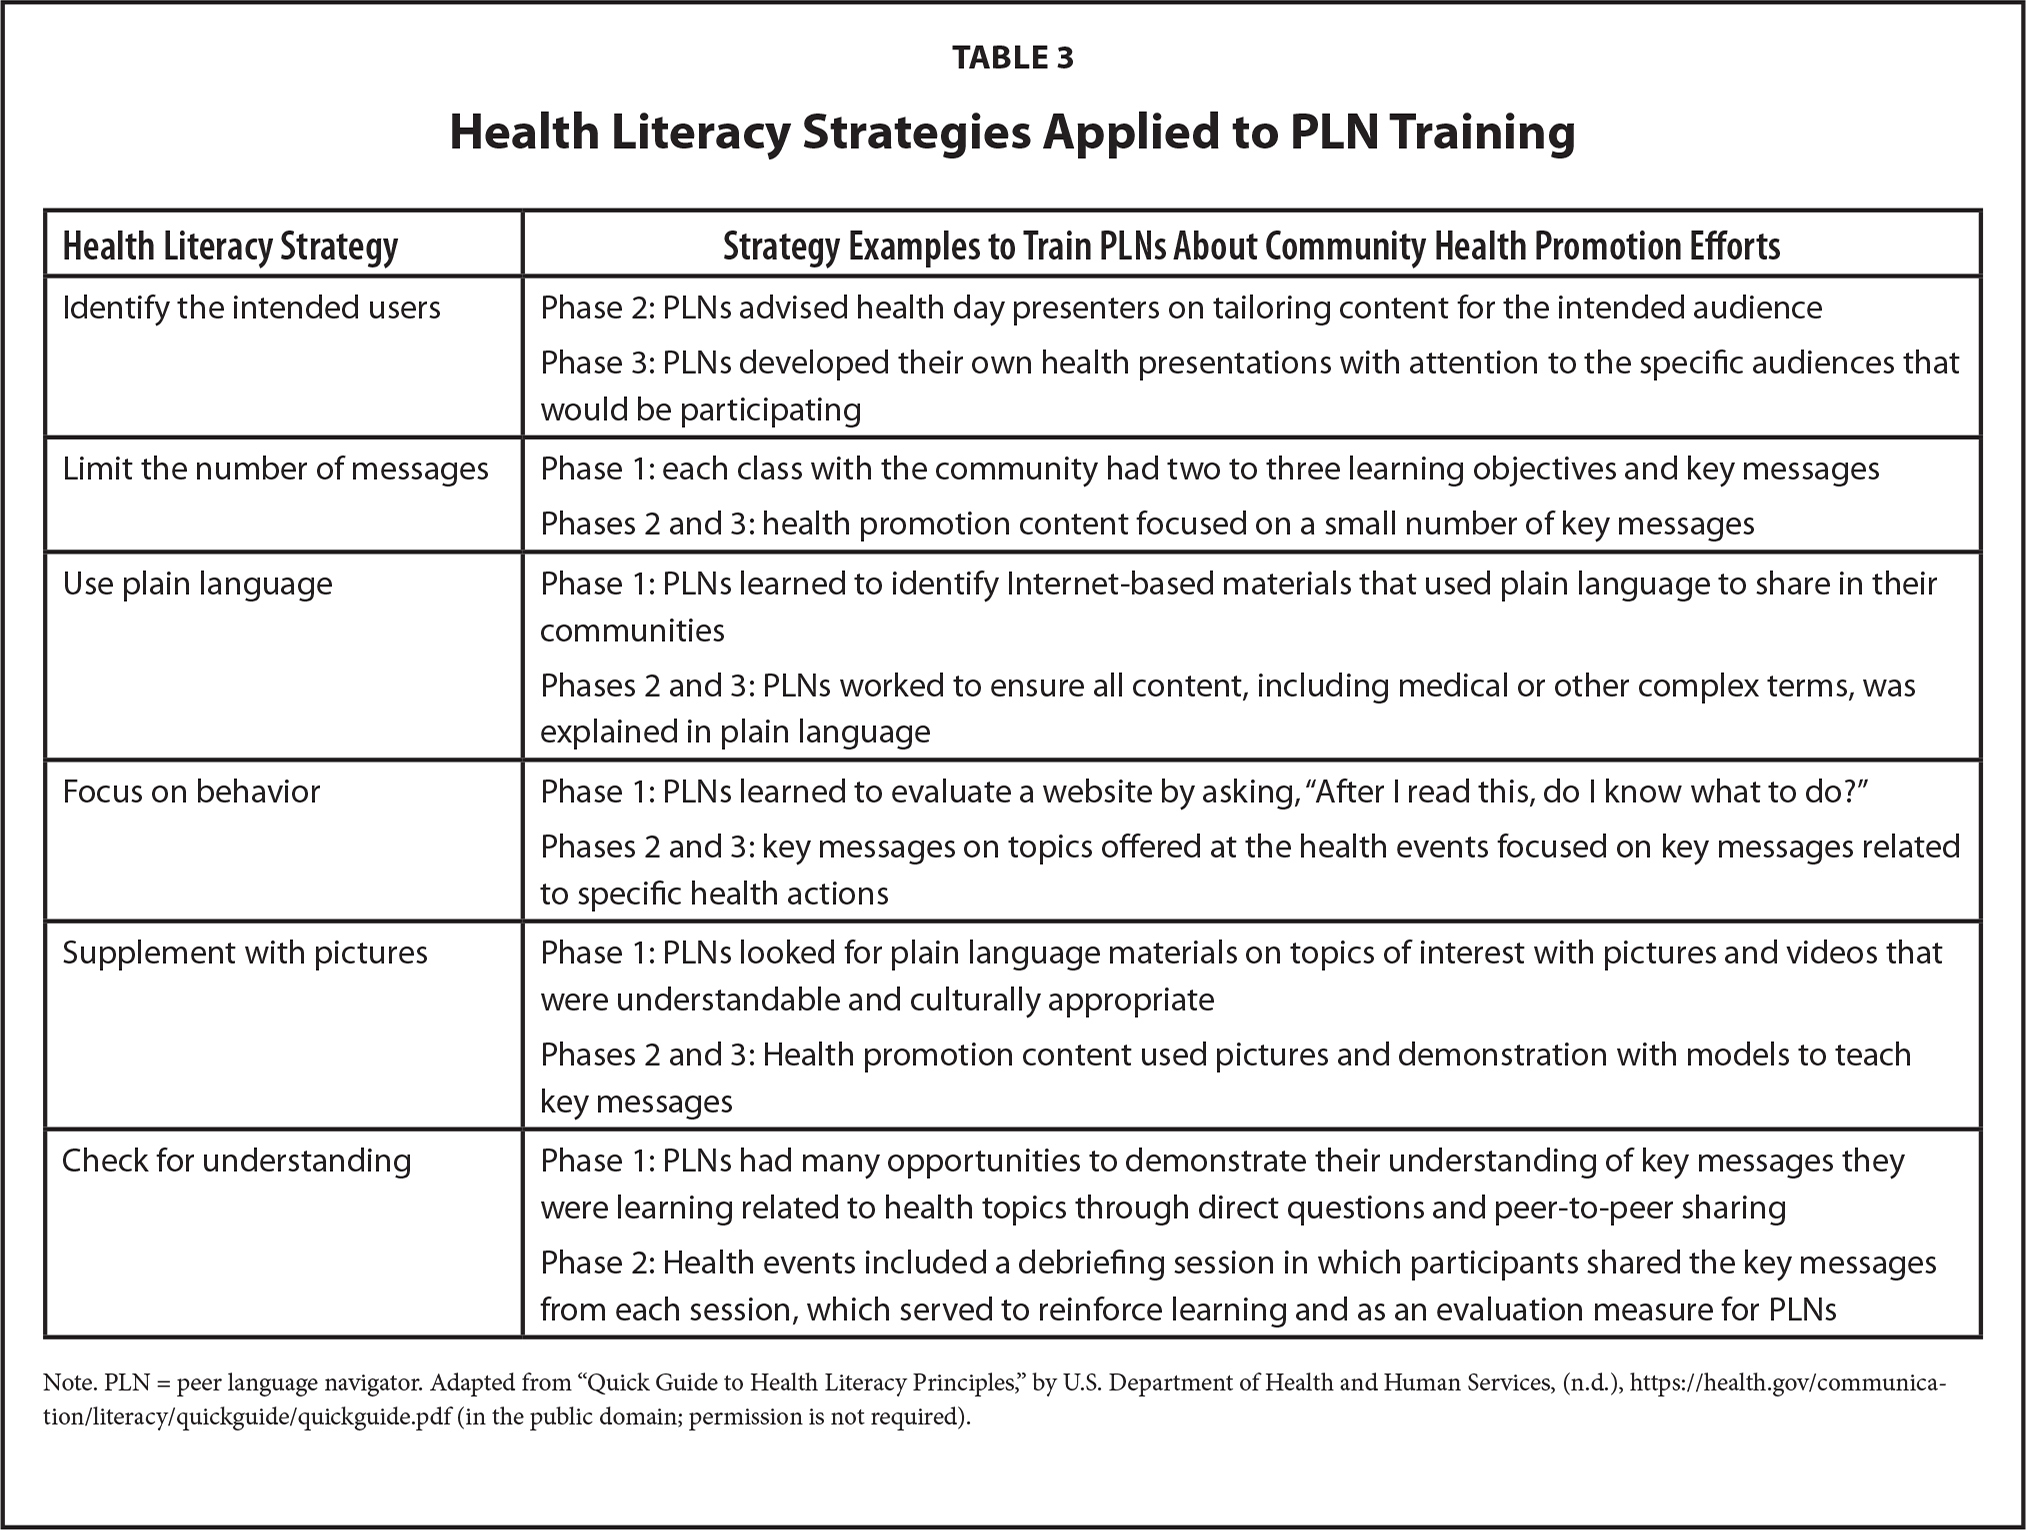 Health Literacy Strategies Applied to PLN Training